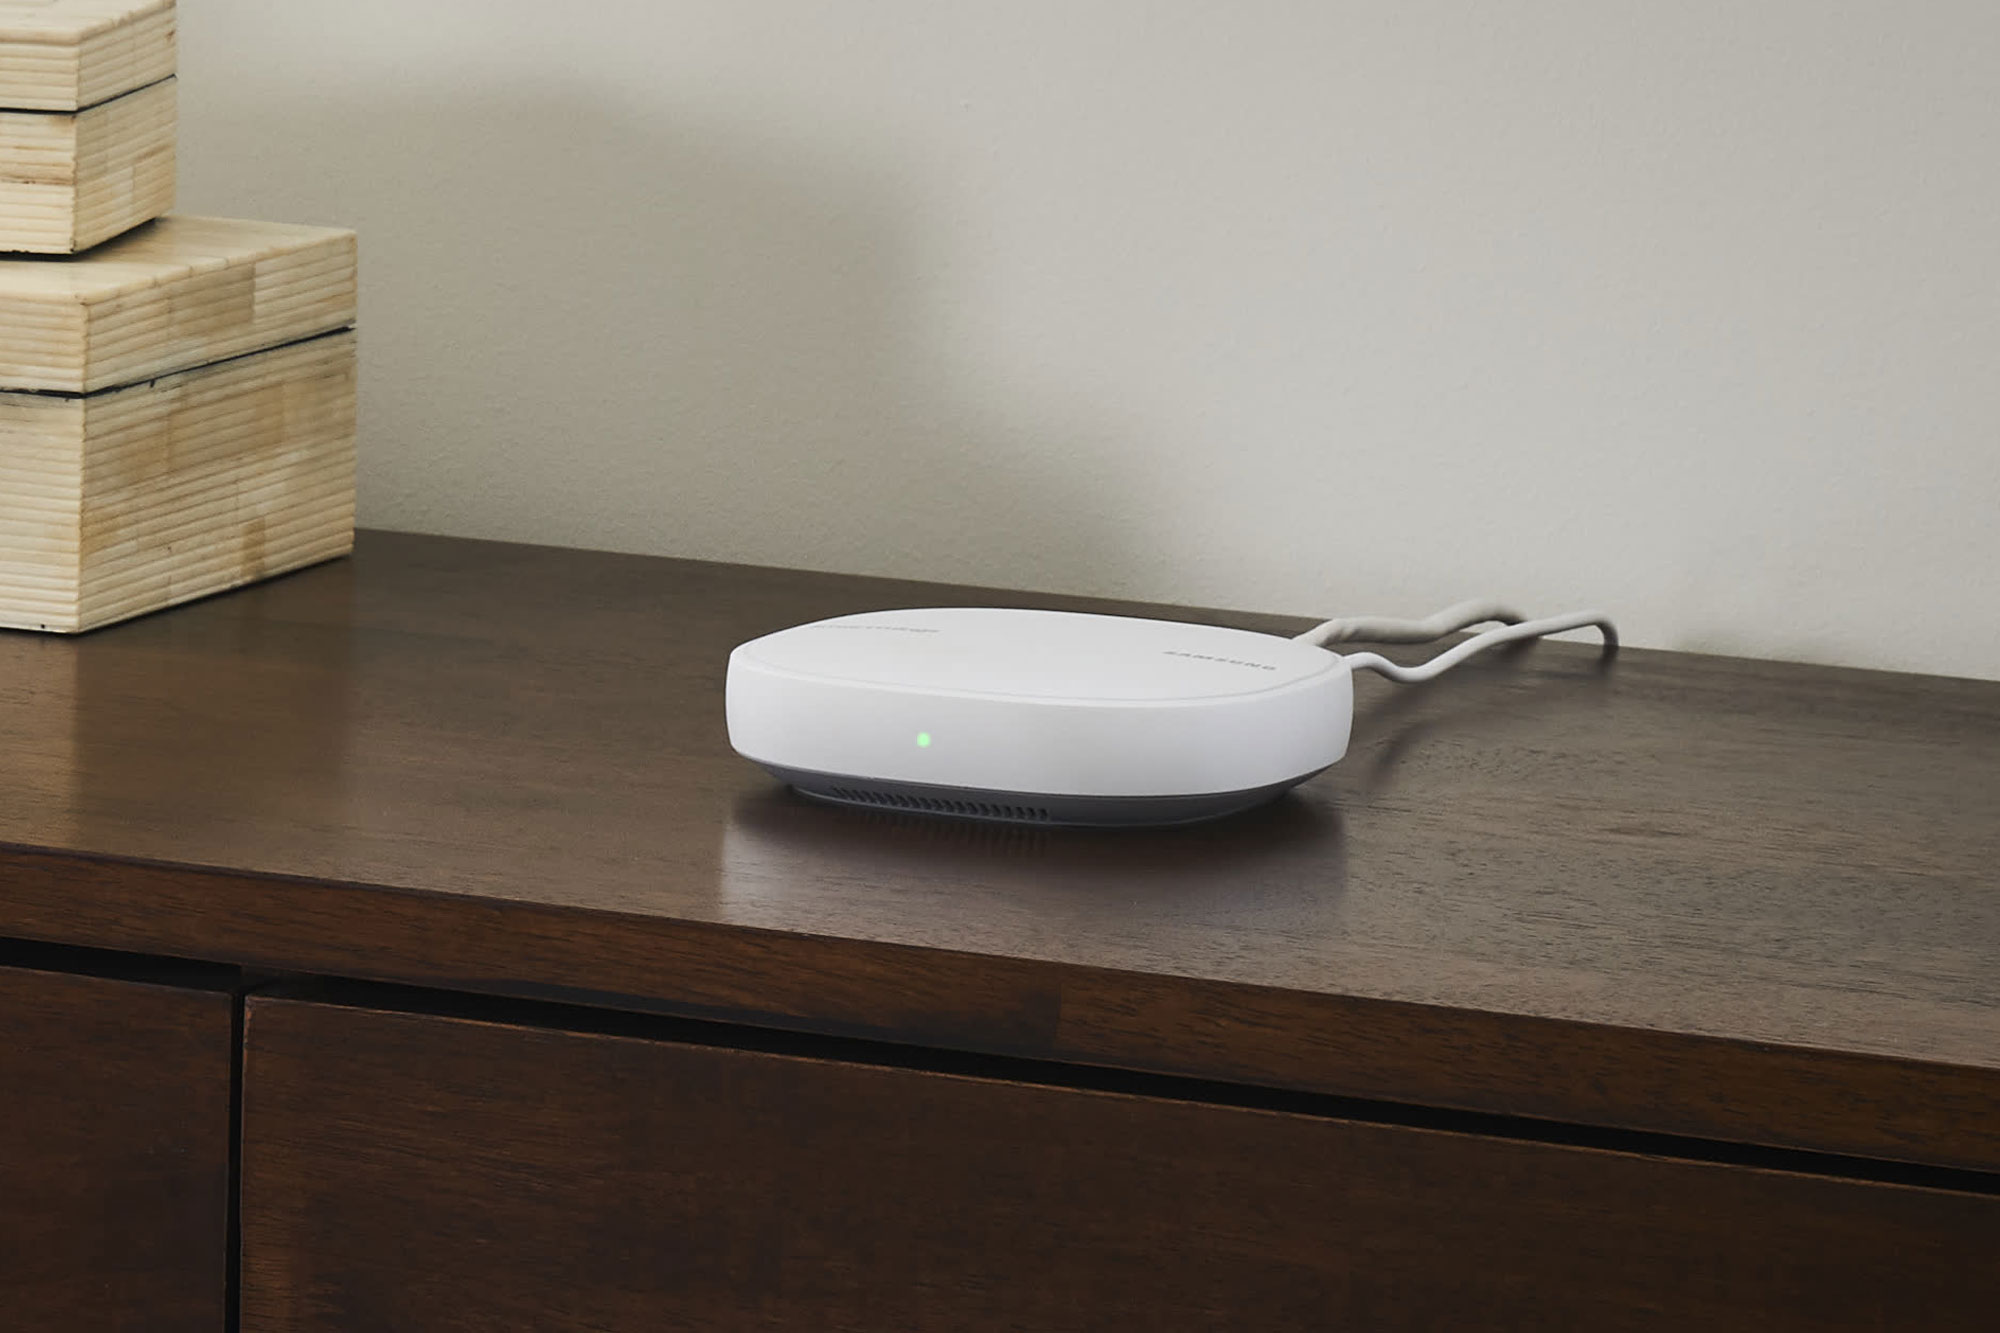 Samsung Smartthings Wifi A Powerful Mesh Wi Fi Router For